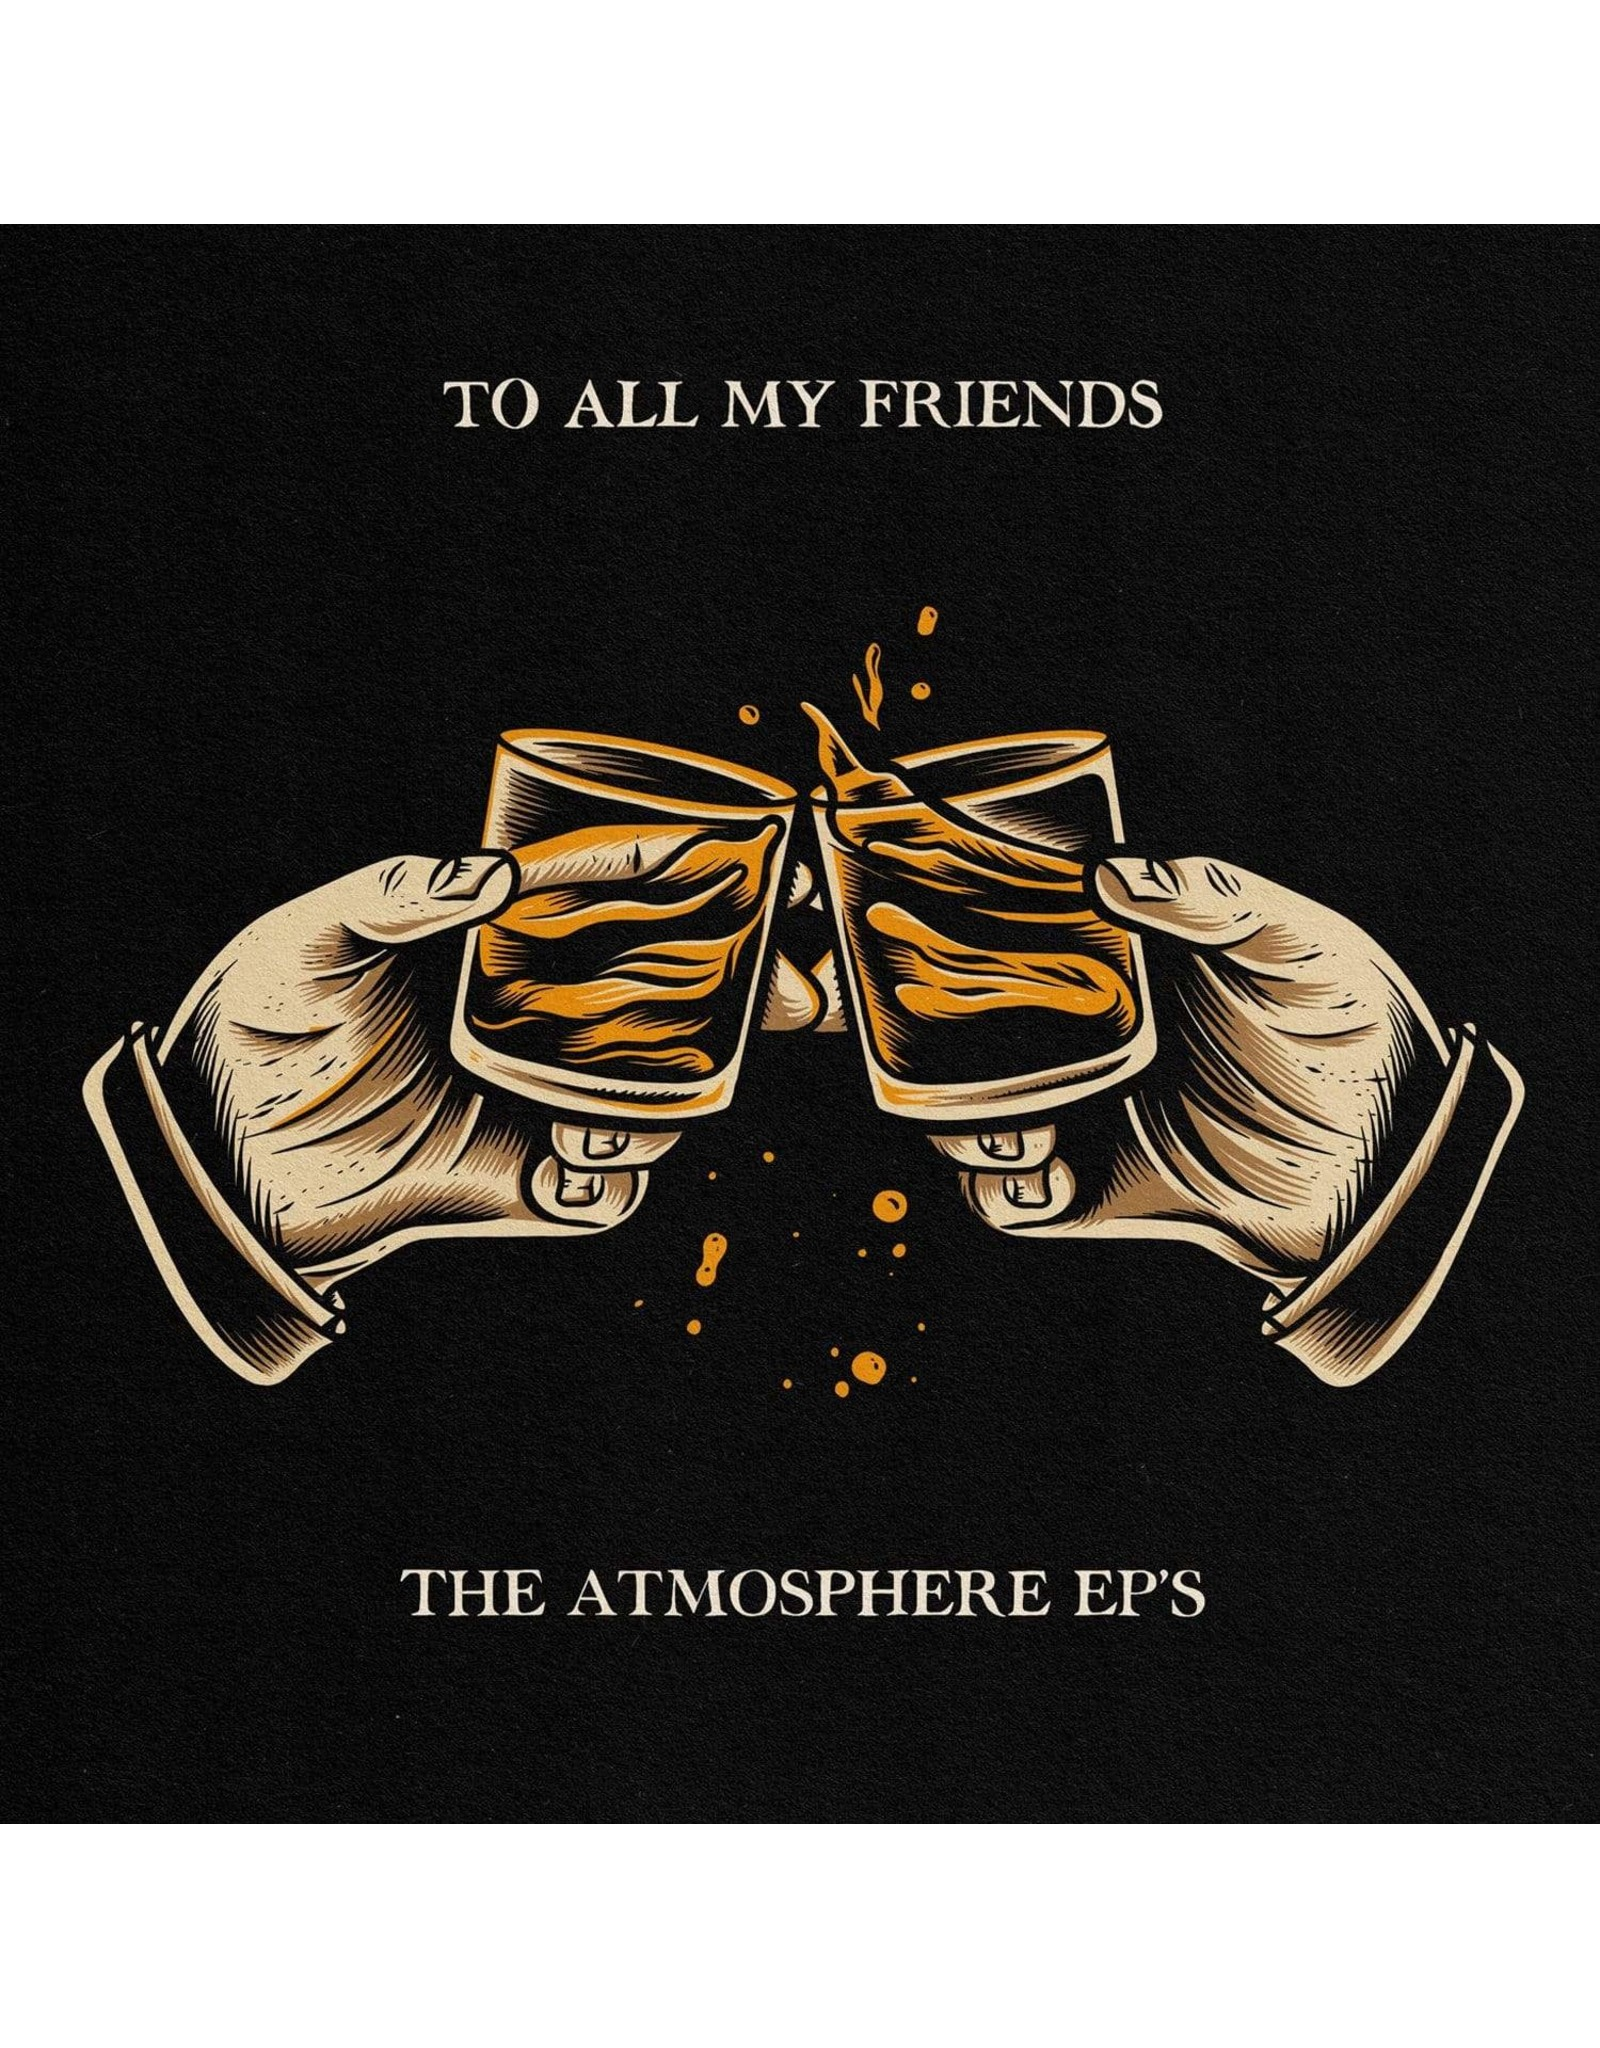 Atmosphere - To All My Friends, Blood Makes The Blade Holy: The Atmosphere EP's LP